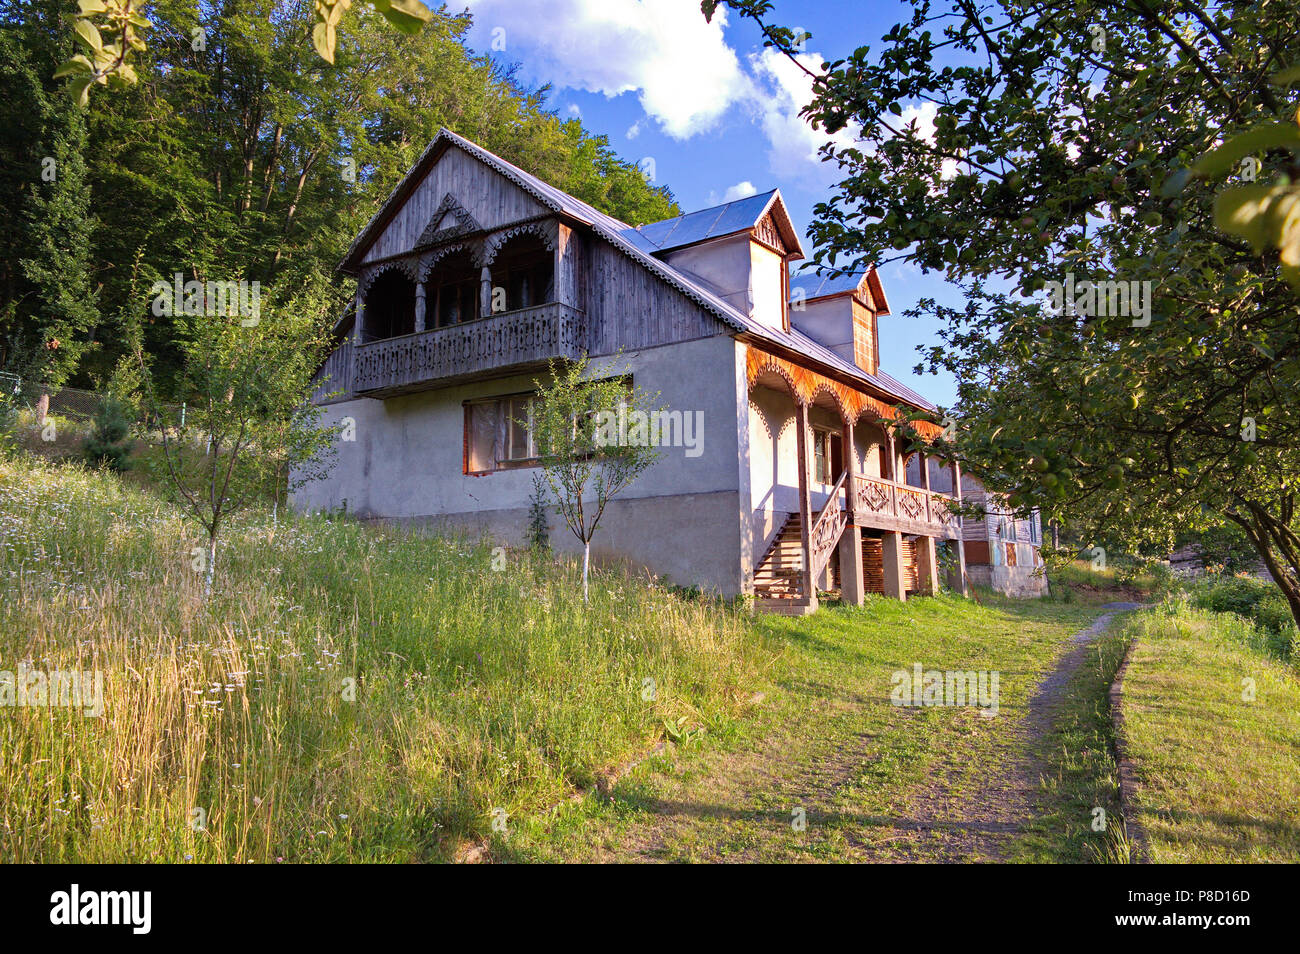 Two Storey House With Carved Balcony And Porch In The Village For Your Design Stock Photo Alamy